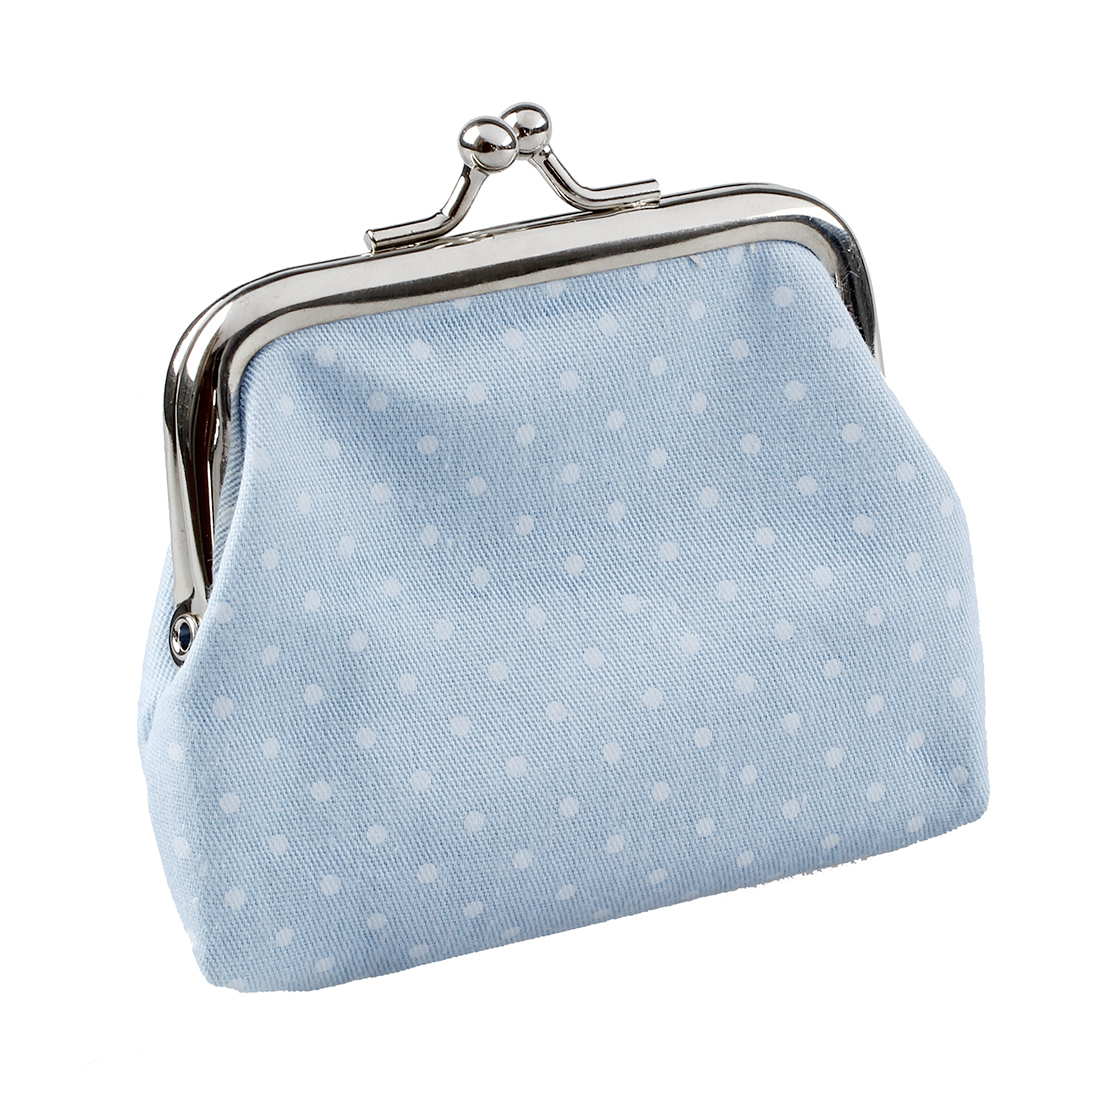 AFBC Popular Cute girls Wallet Clutch Change Purse key/coins bag Mini Handbag Pouch